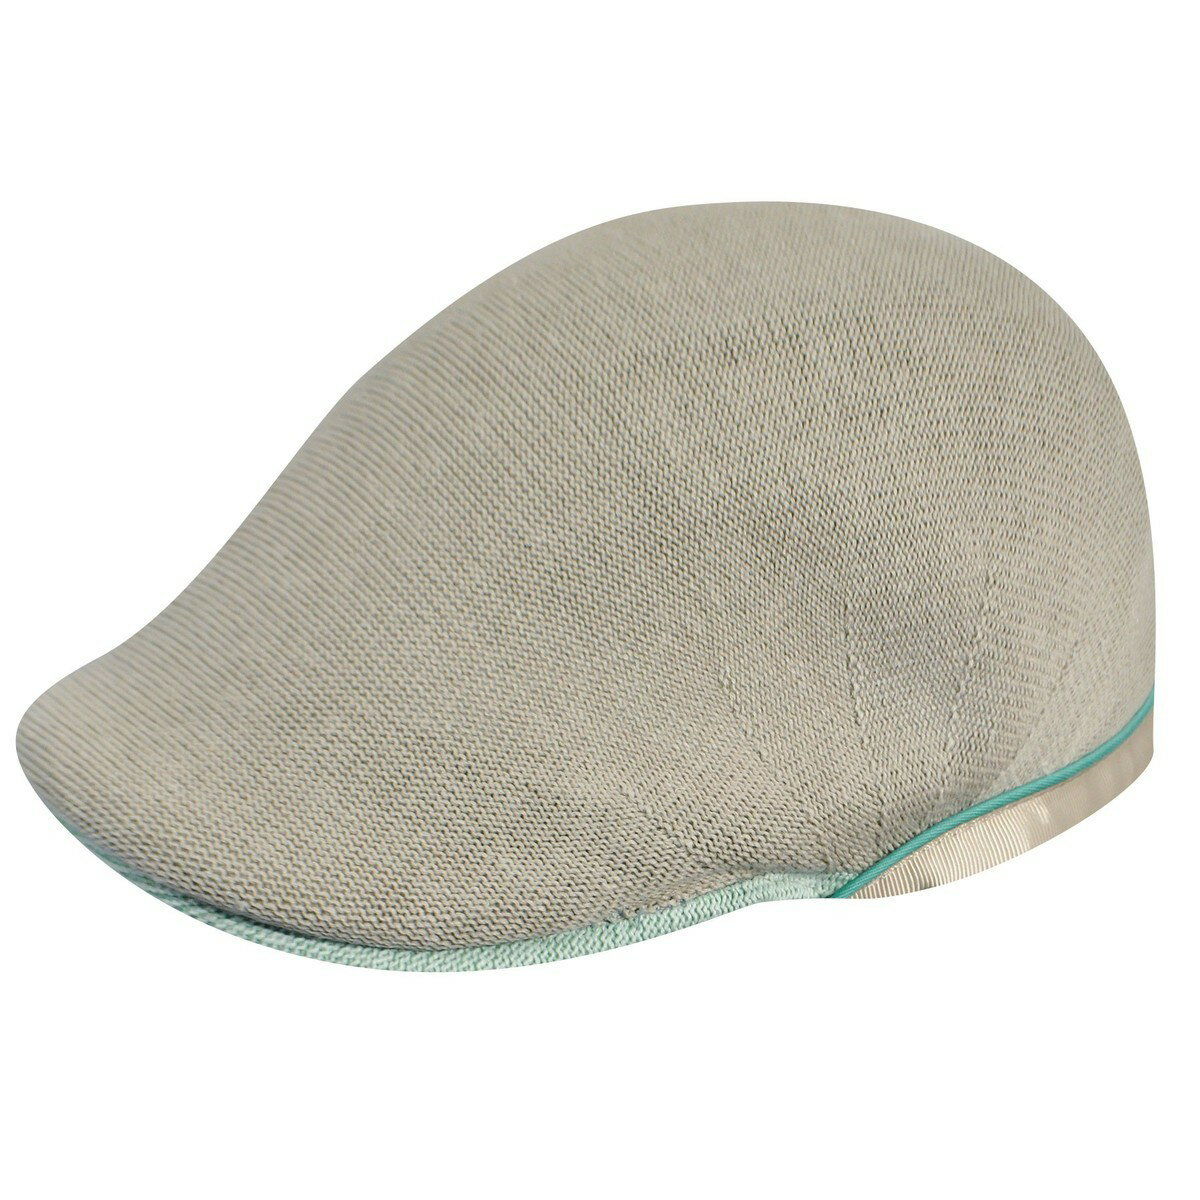 Kangol カンゴール Hemp 507 Putty Pistachio Ivy Caps & Flat Caps 帽子 Putty Pistachio